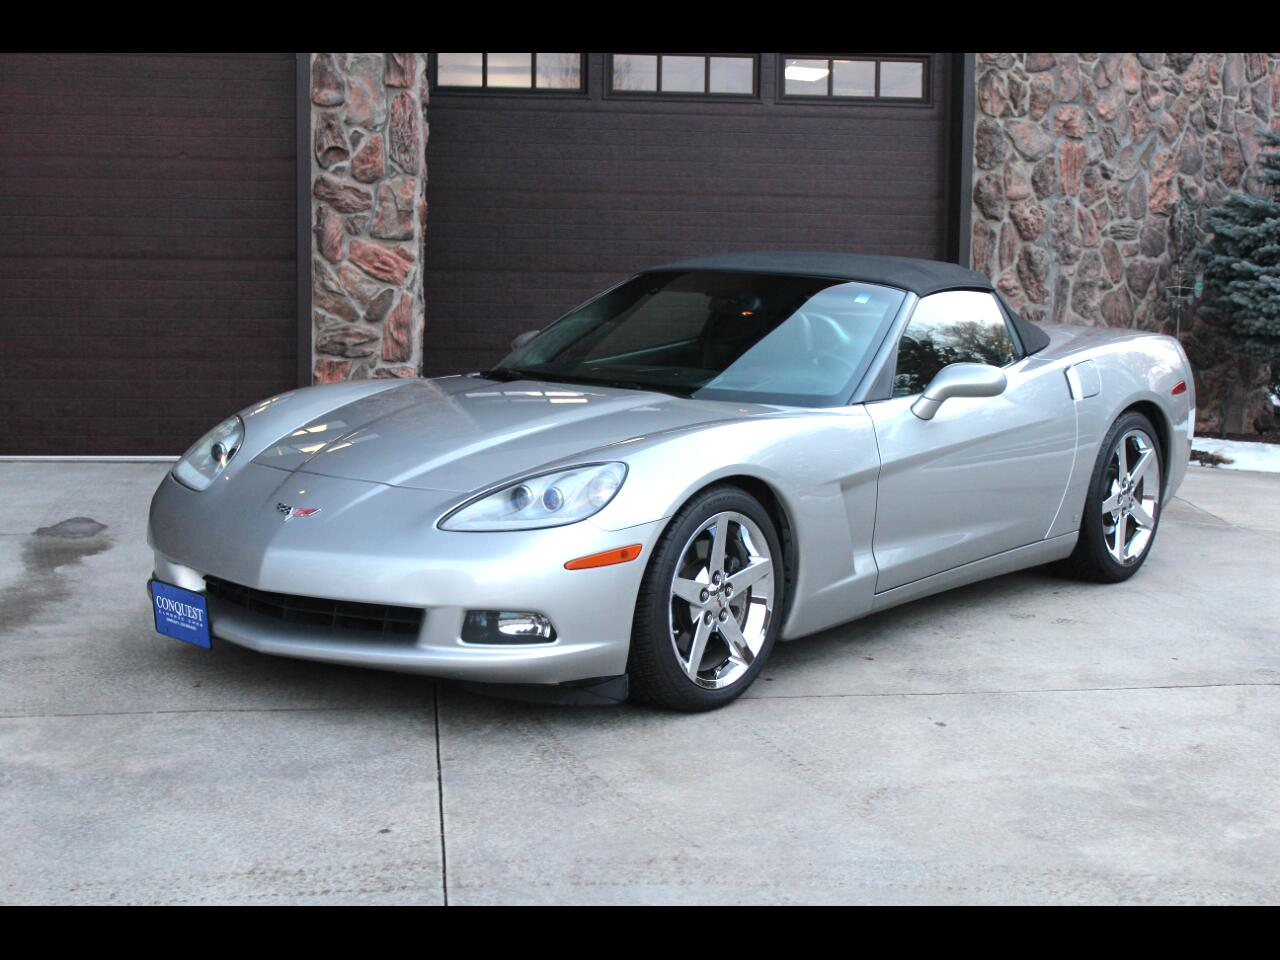 Chevrolet Corvette Convertible LT3 2008